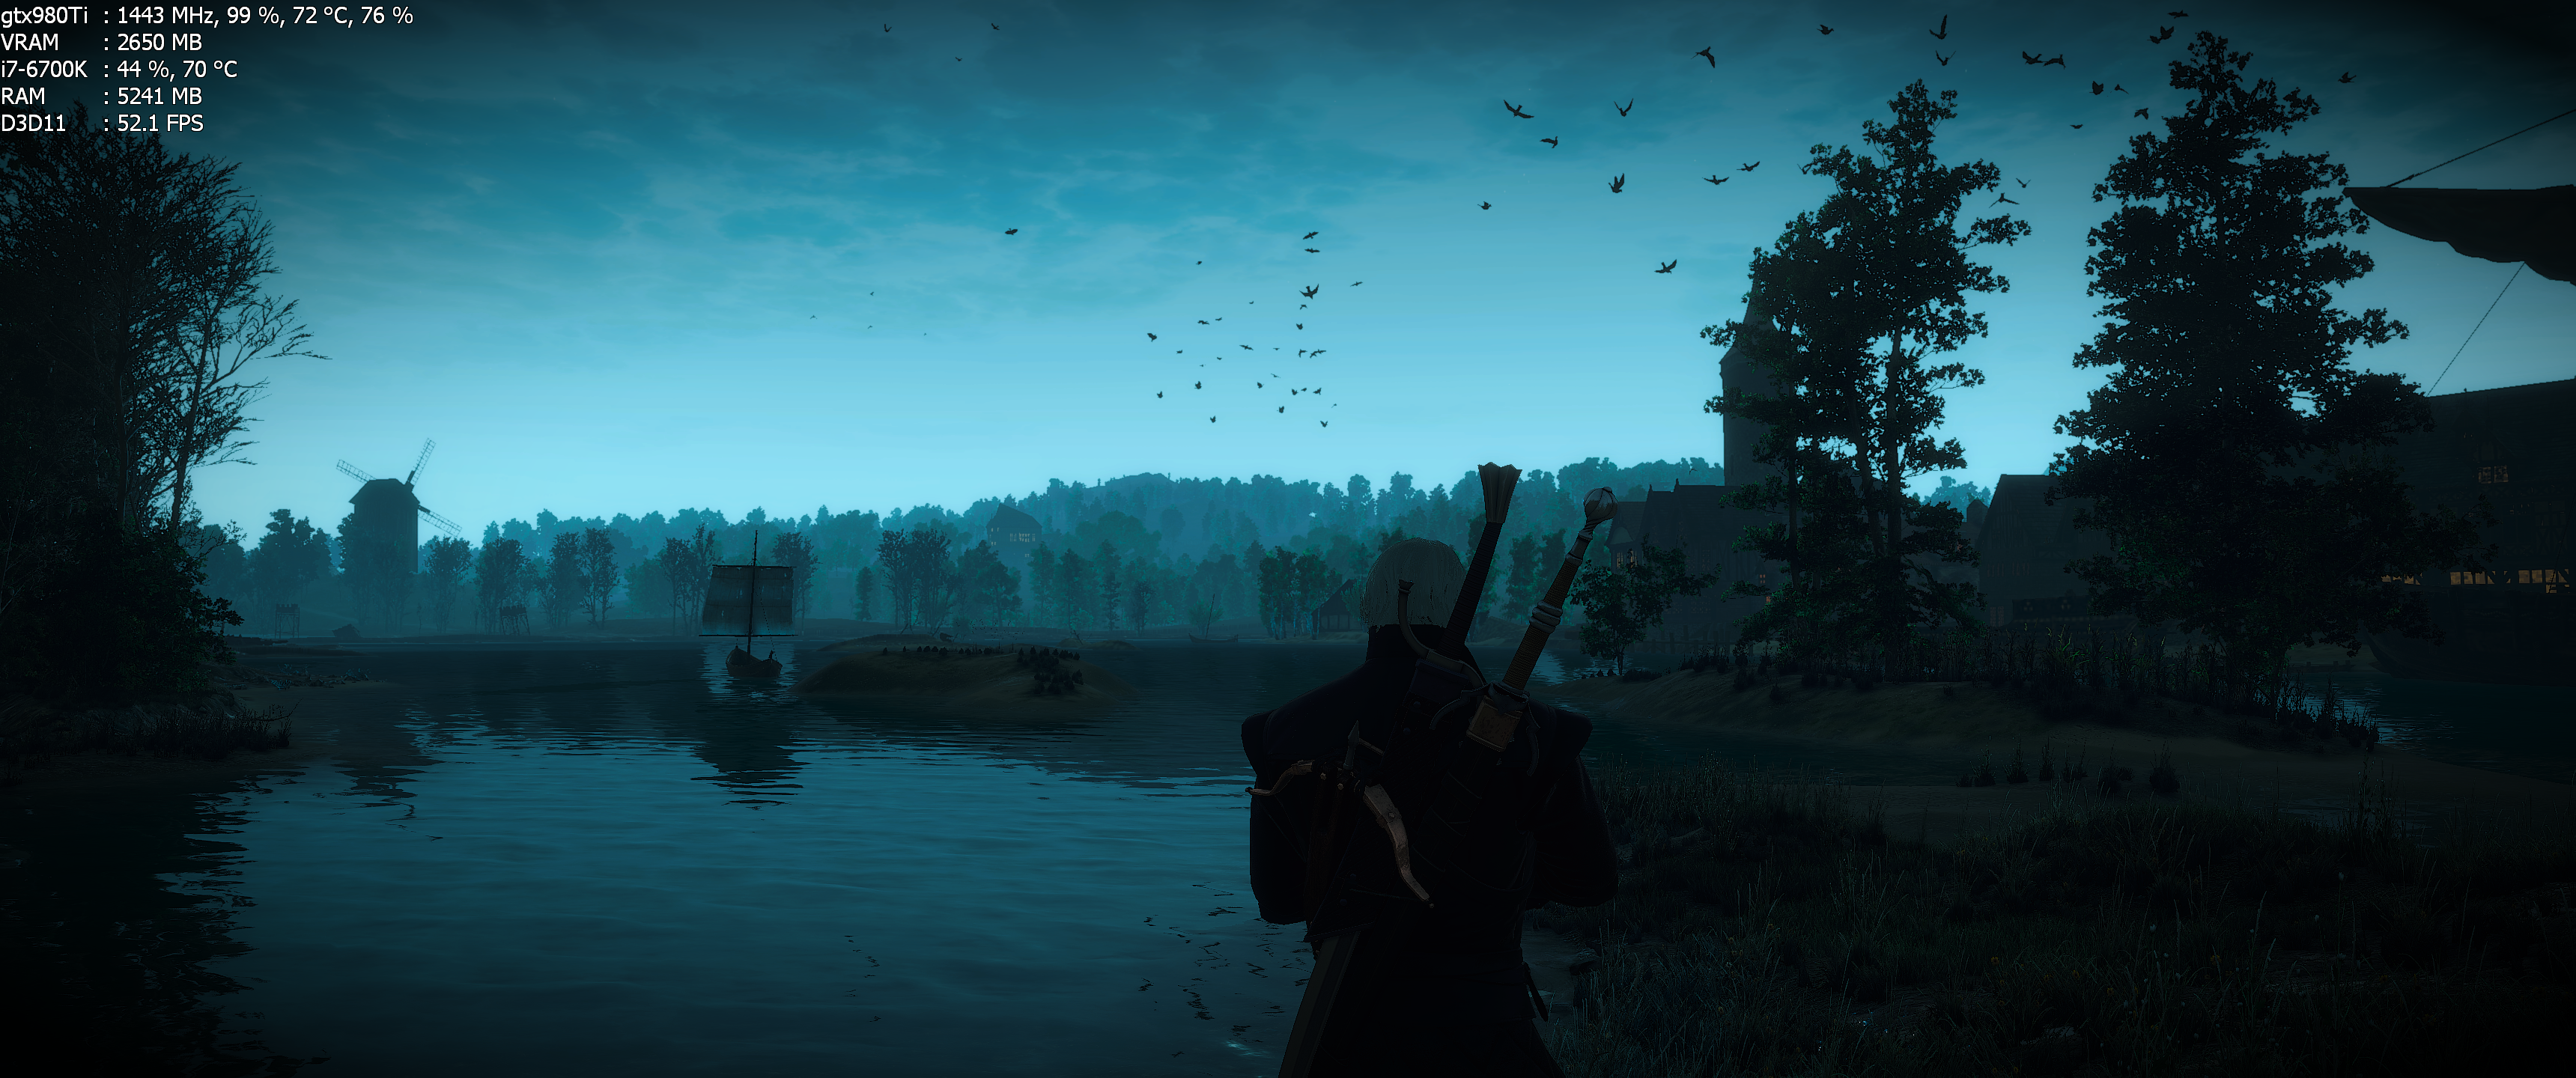 The Witcher 3 Screenshot 2017.11.29 - 17.53.14.41.png - Witcher 3: Wild Hunt, the